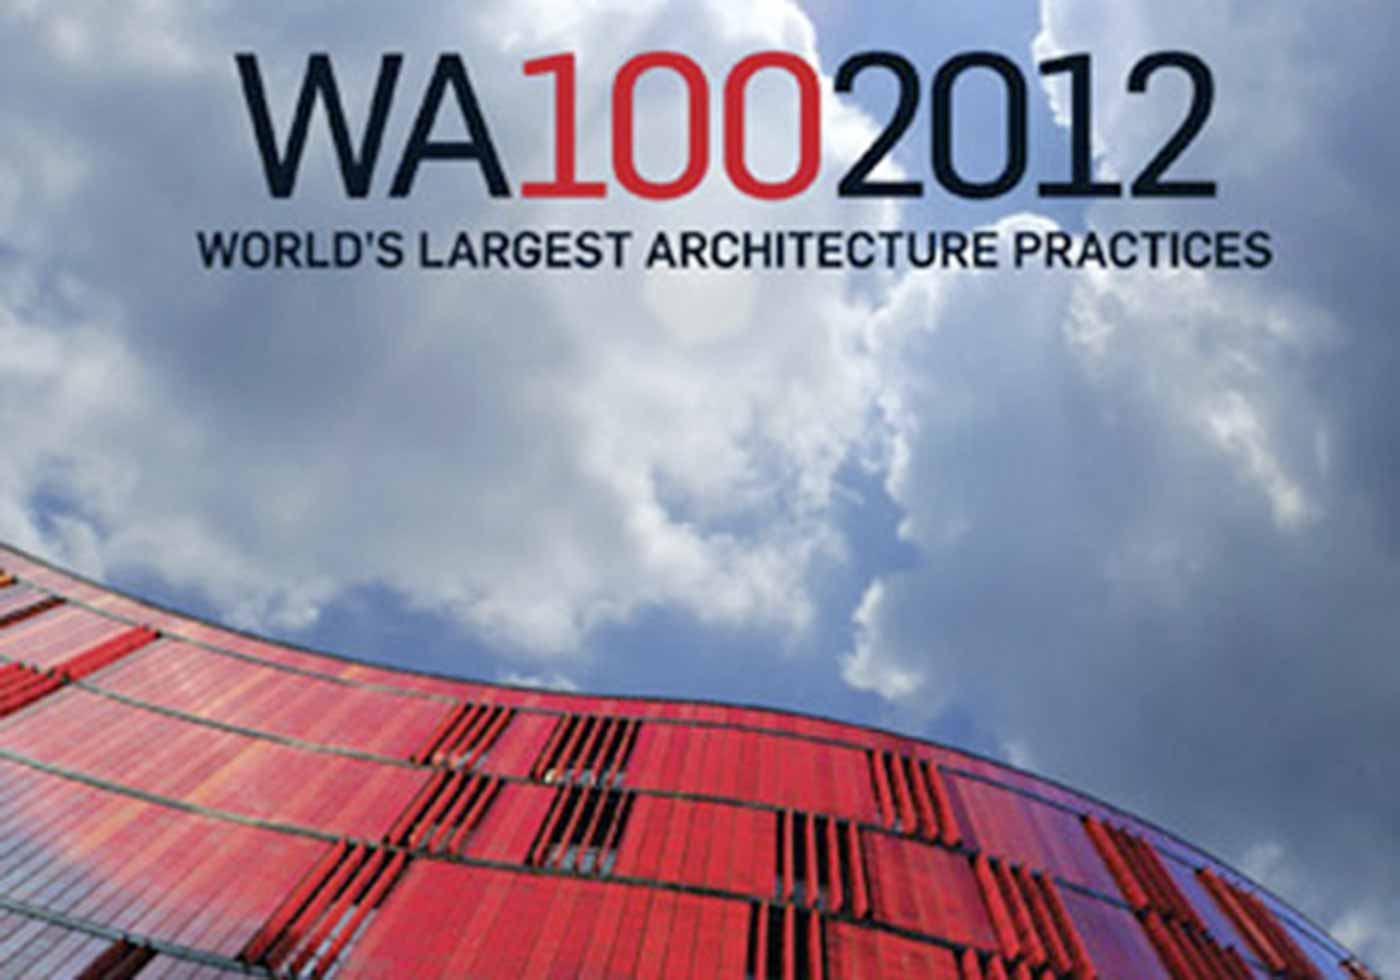 ATP amongst the Top 10 retail architects worldwide